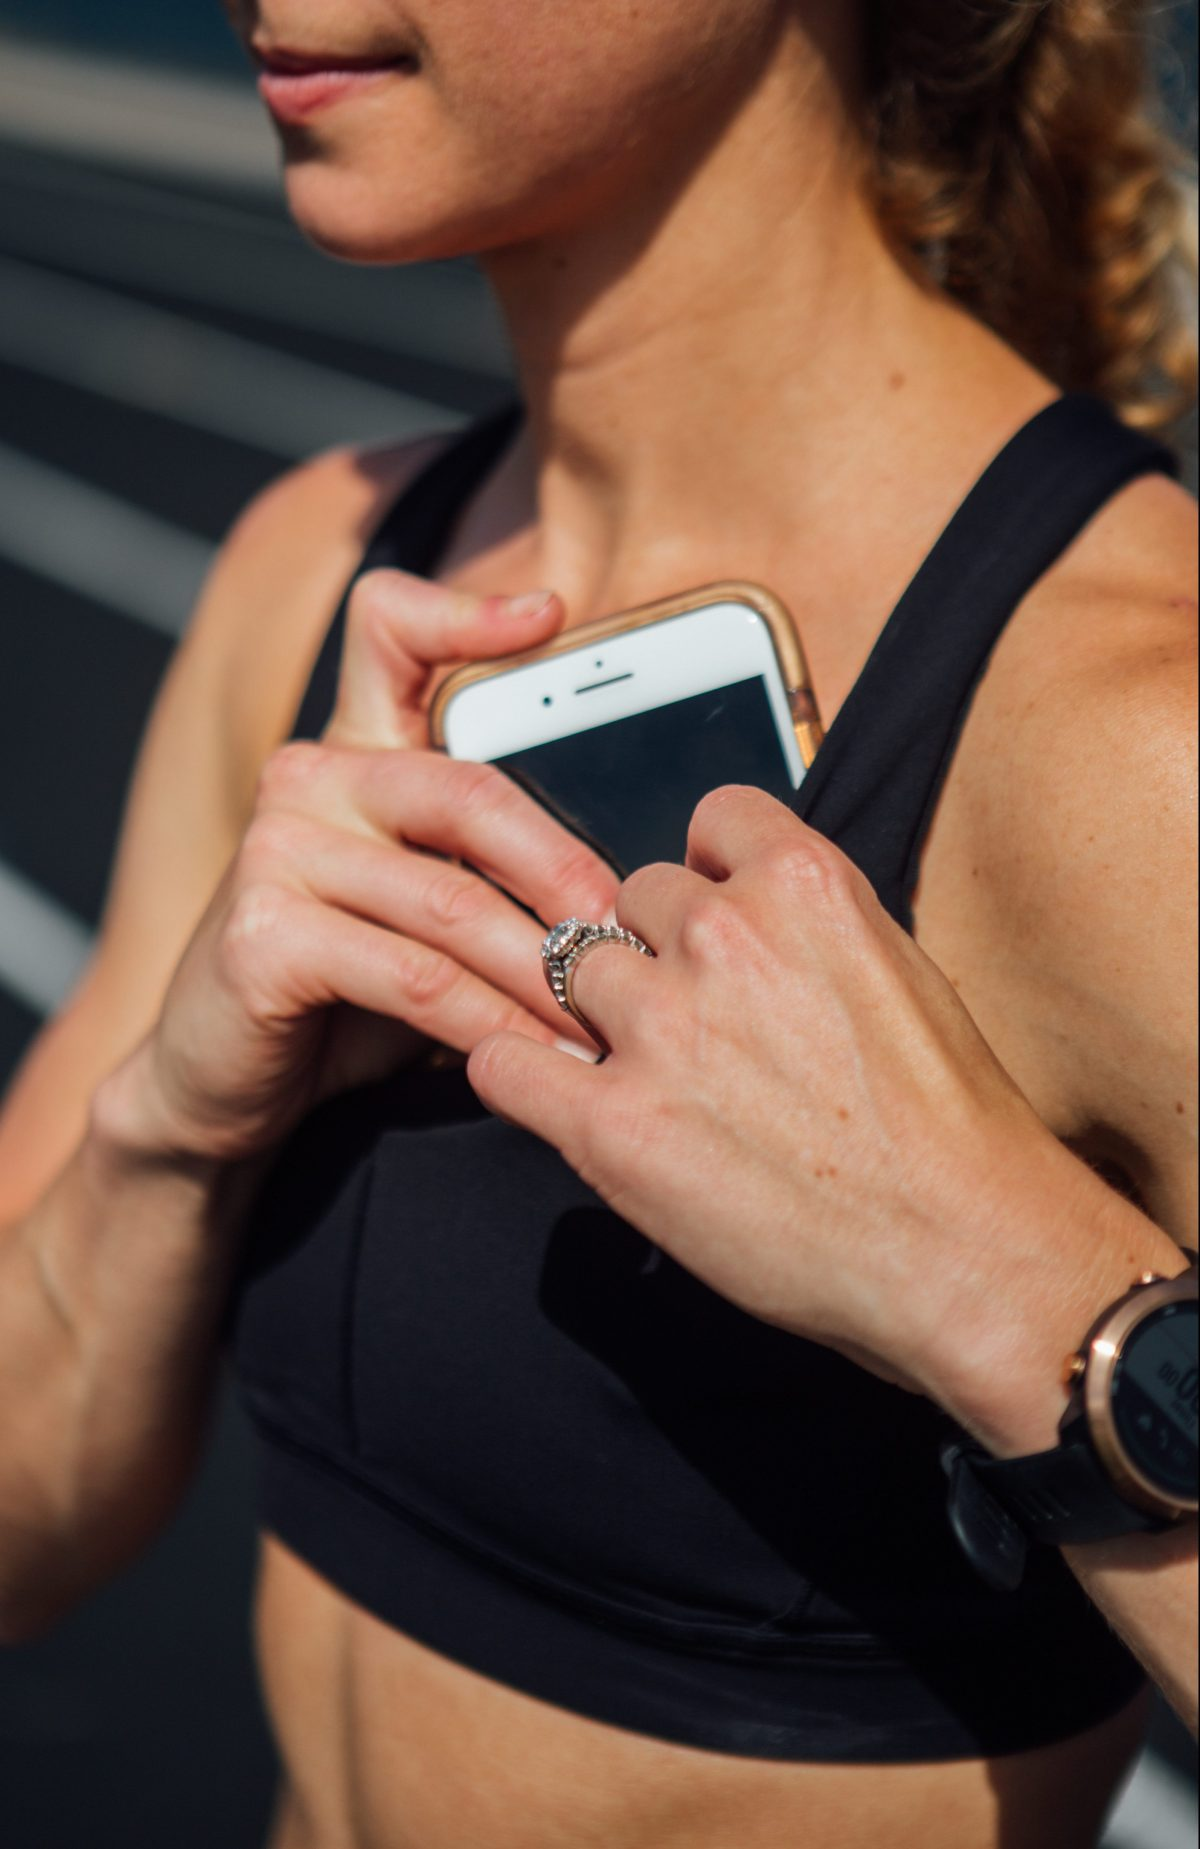 The best running gear that holds your phone